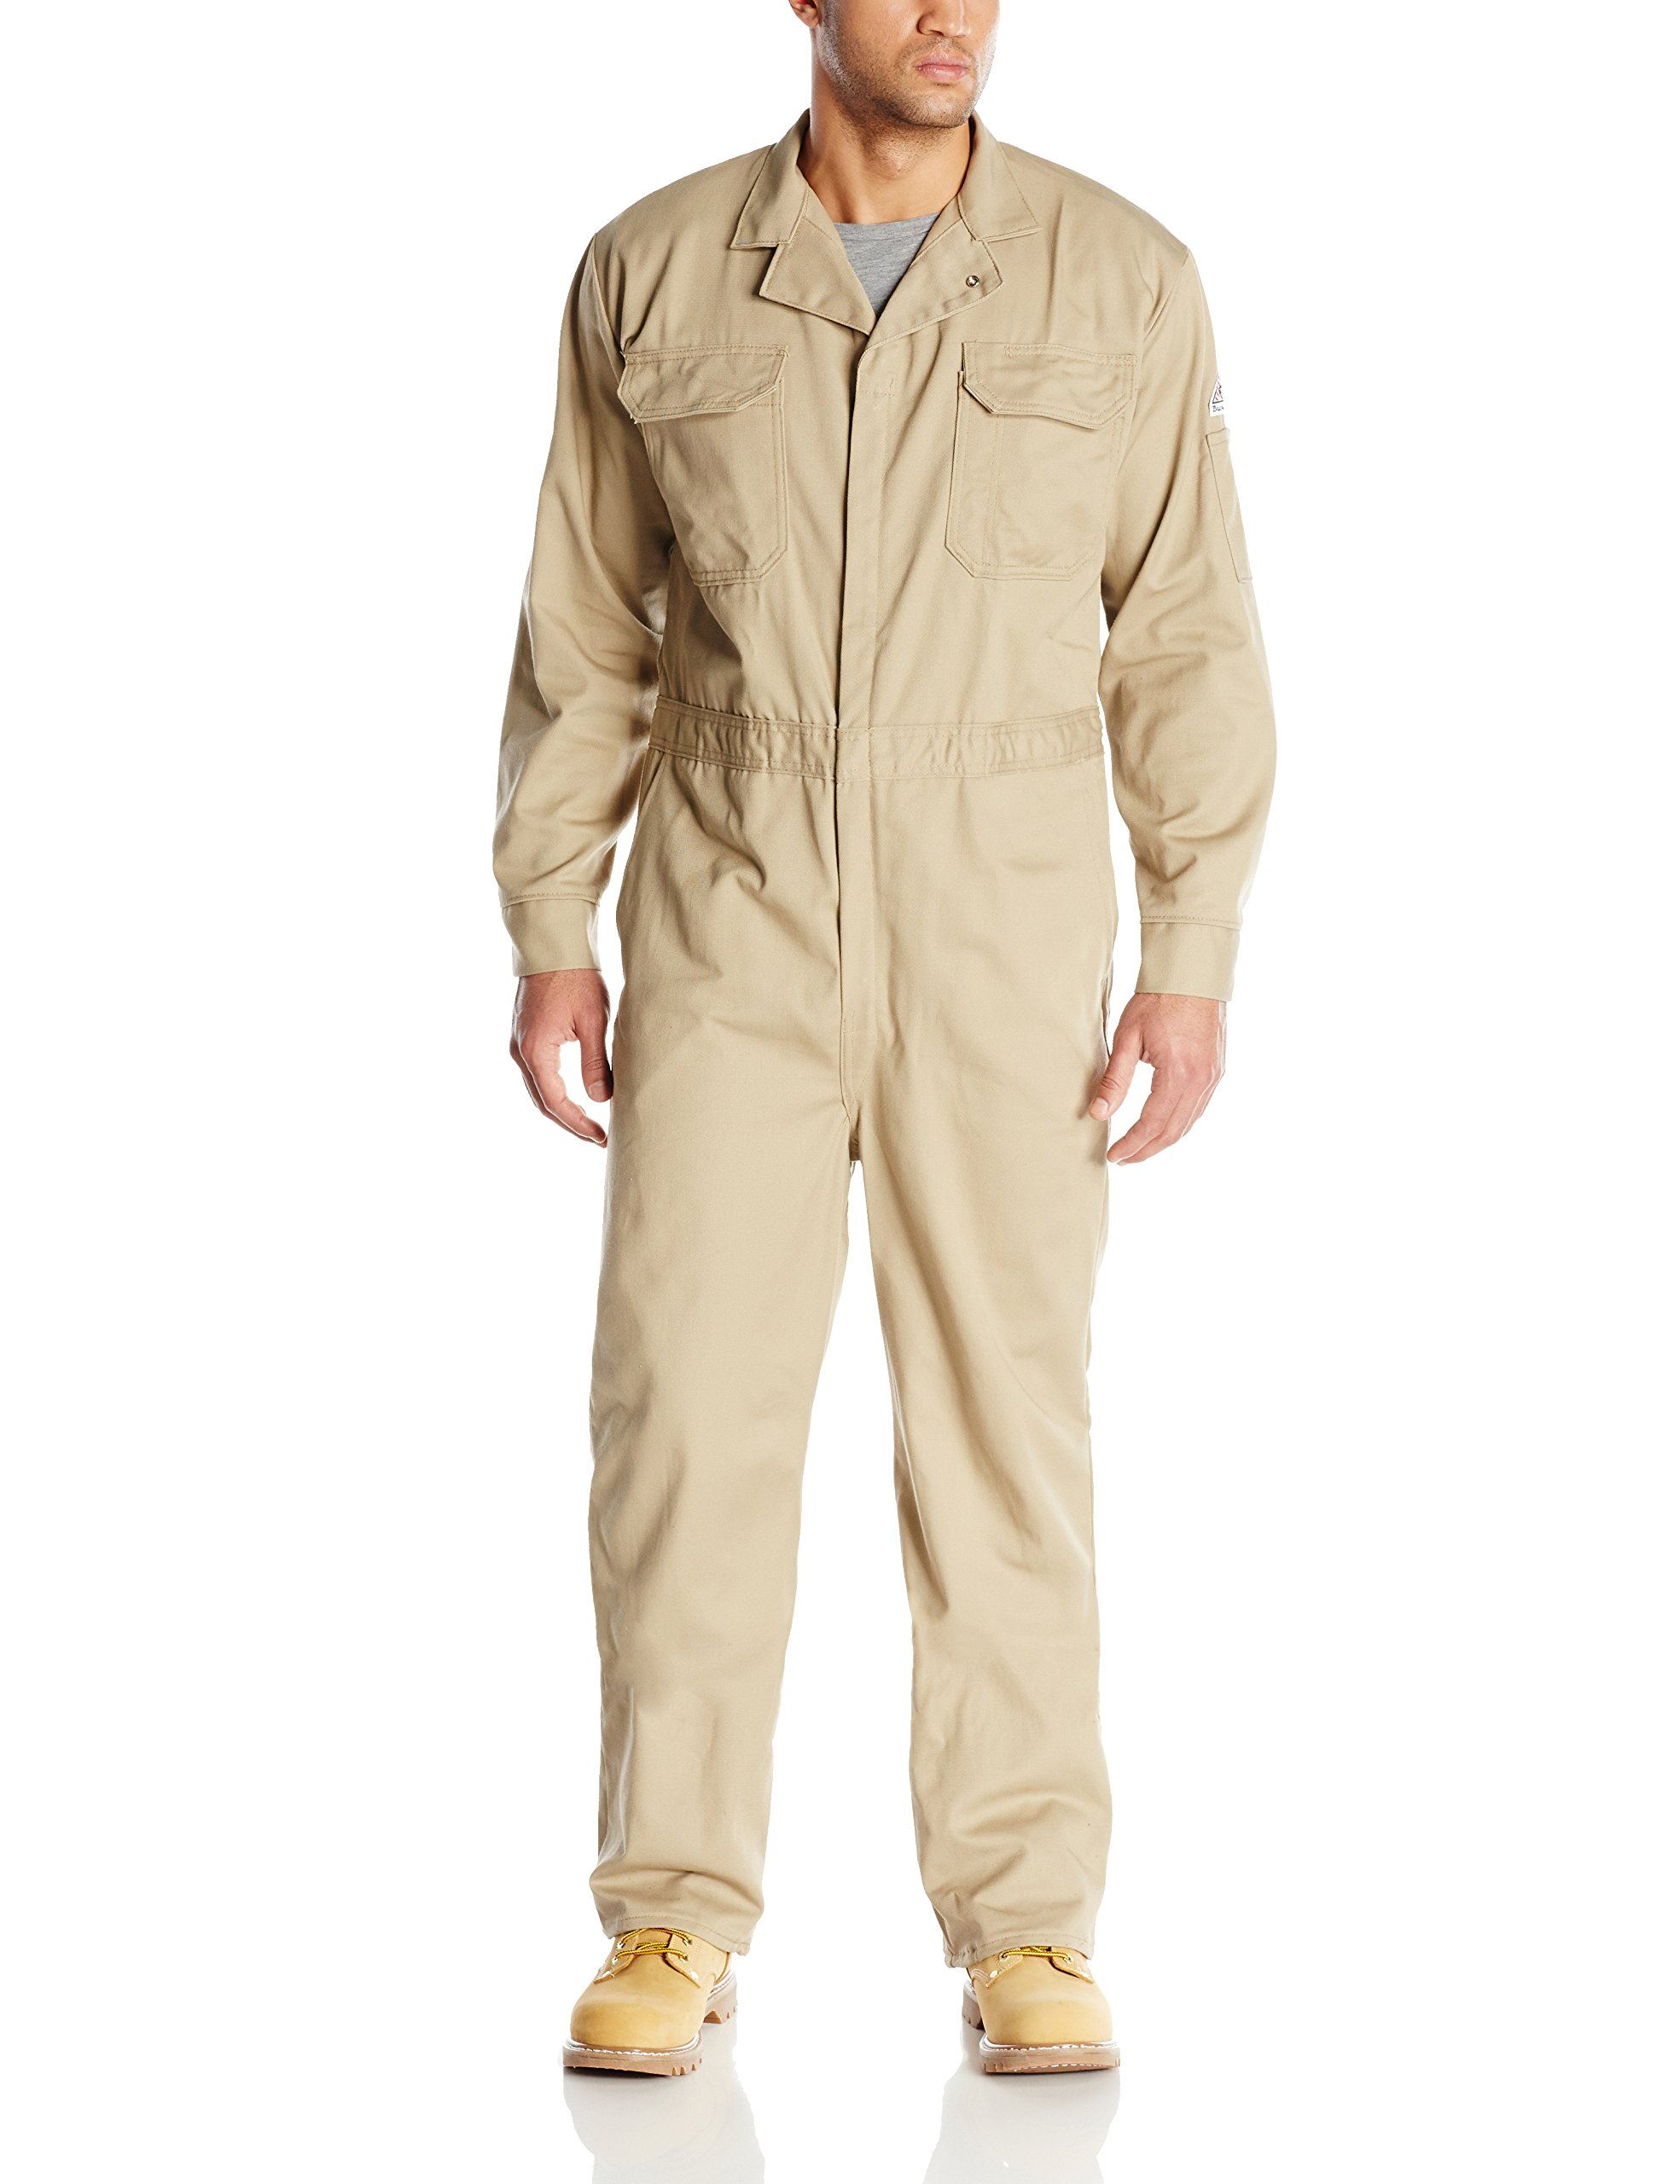 Bulwark Flame Resistant 9 oz Twill Cotton Deluxe Coverall with Concealed Snap Cuff, Khaki, 52